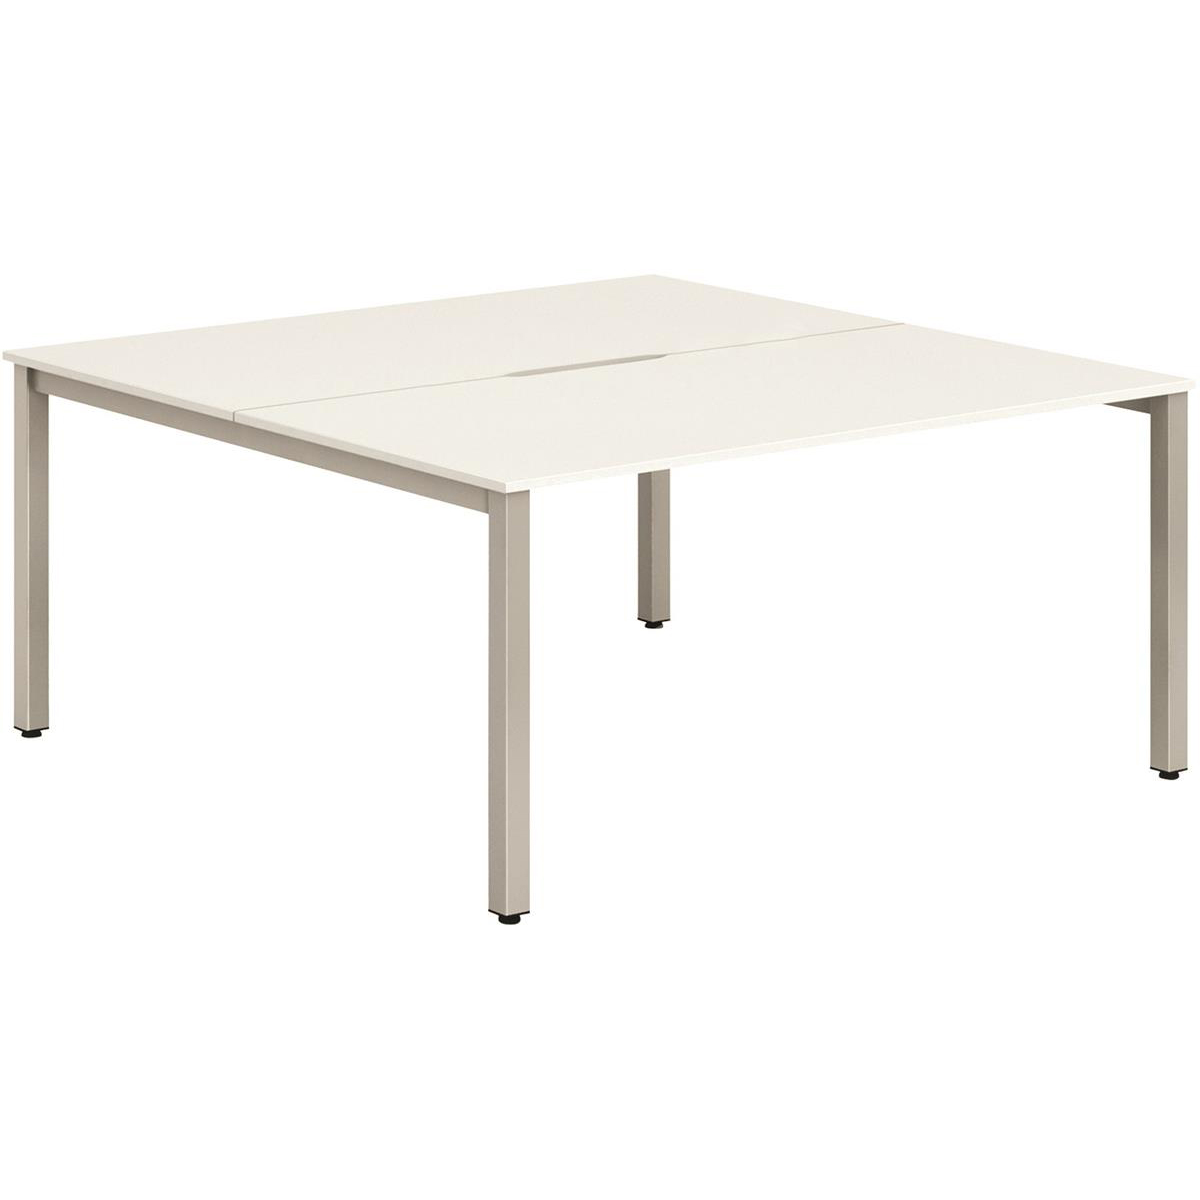 Trexus Bench Desk 2 Person Back to Back Configuration Silver Leg 1200x1600mm White Ref BE180